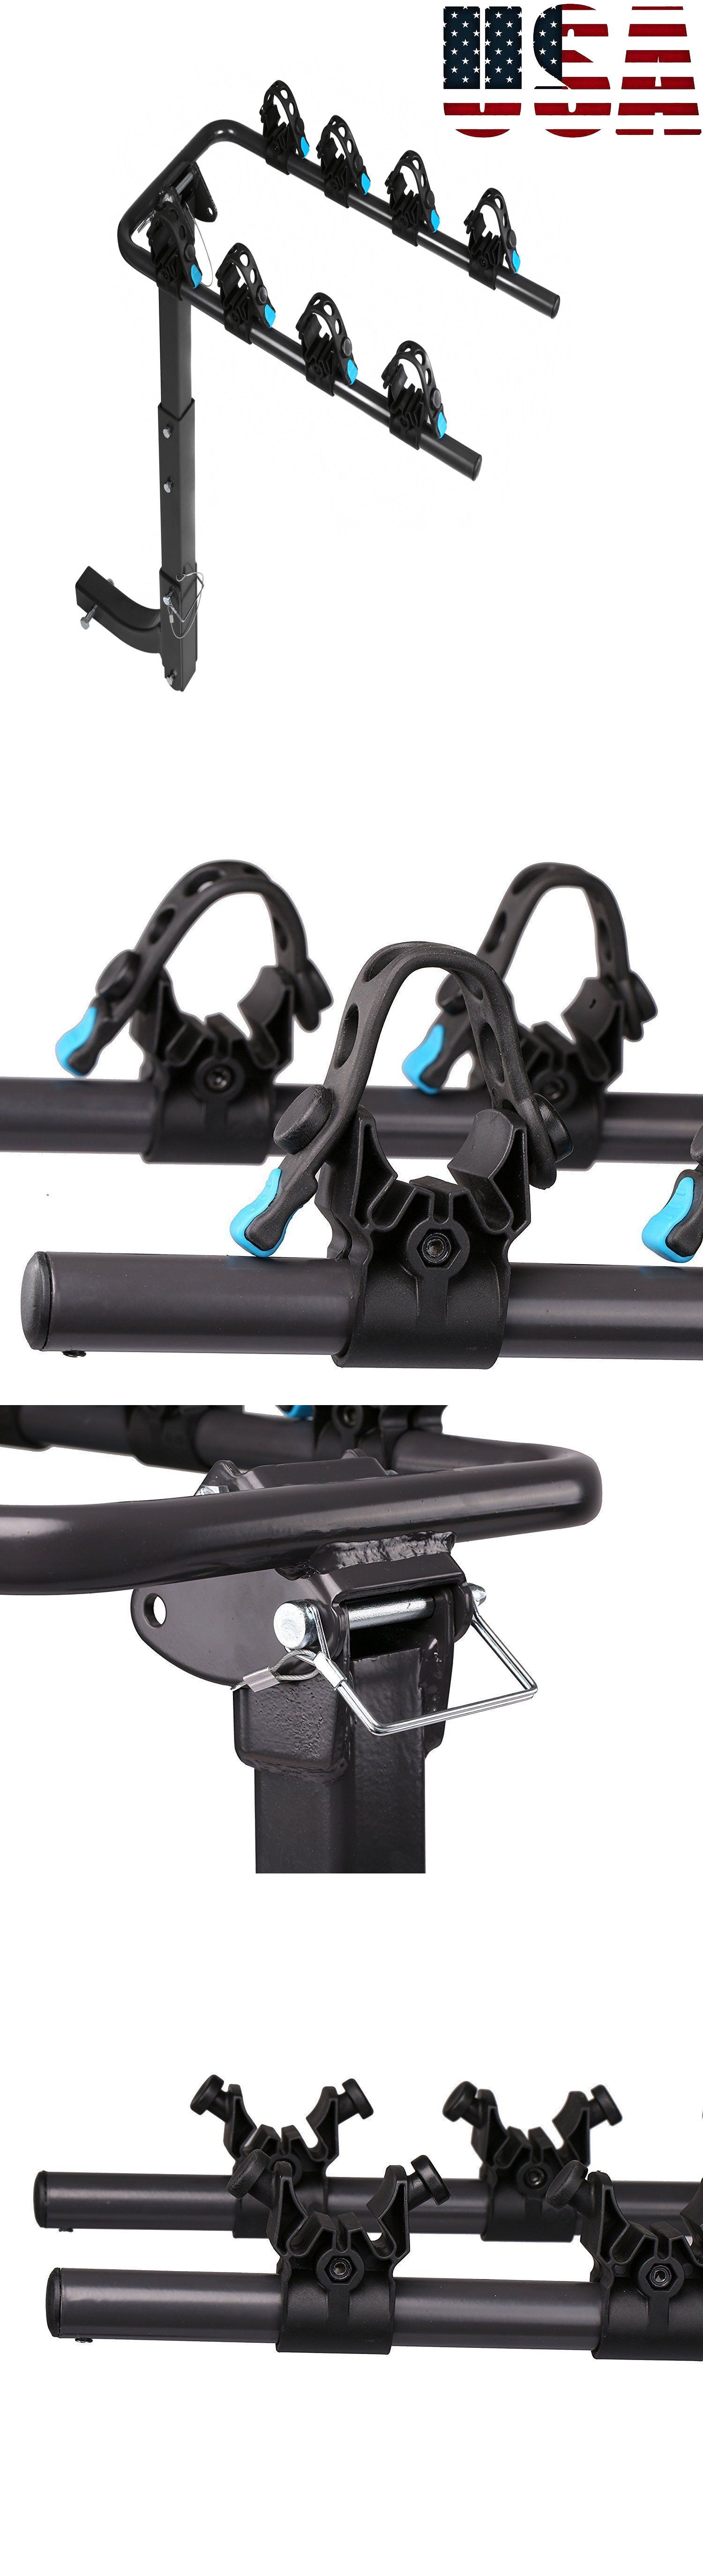 Car and Truck Racks 177849: 4 Bike Hitch Mount Rear Rack Car